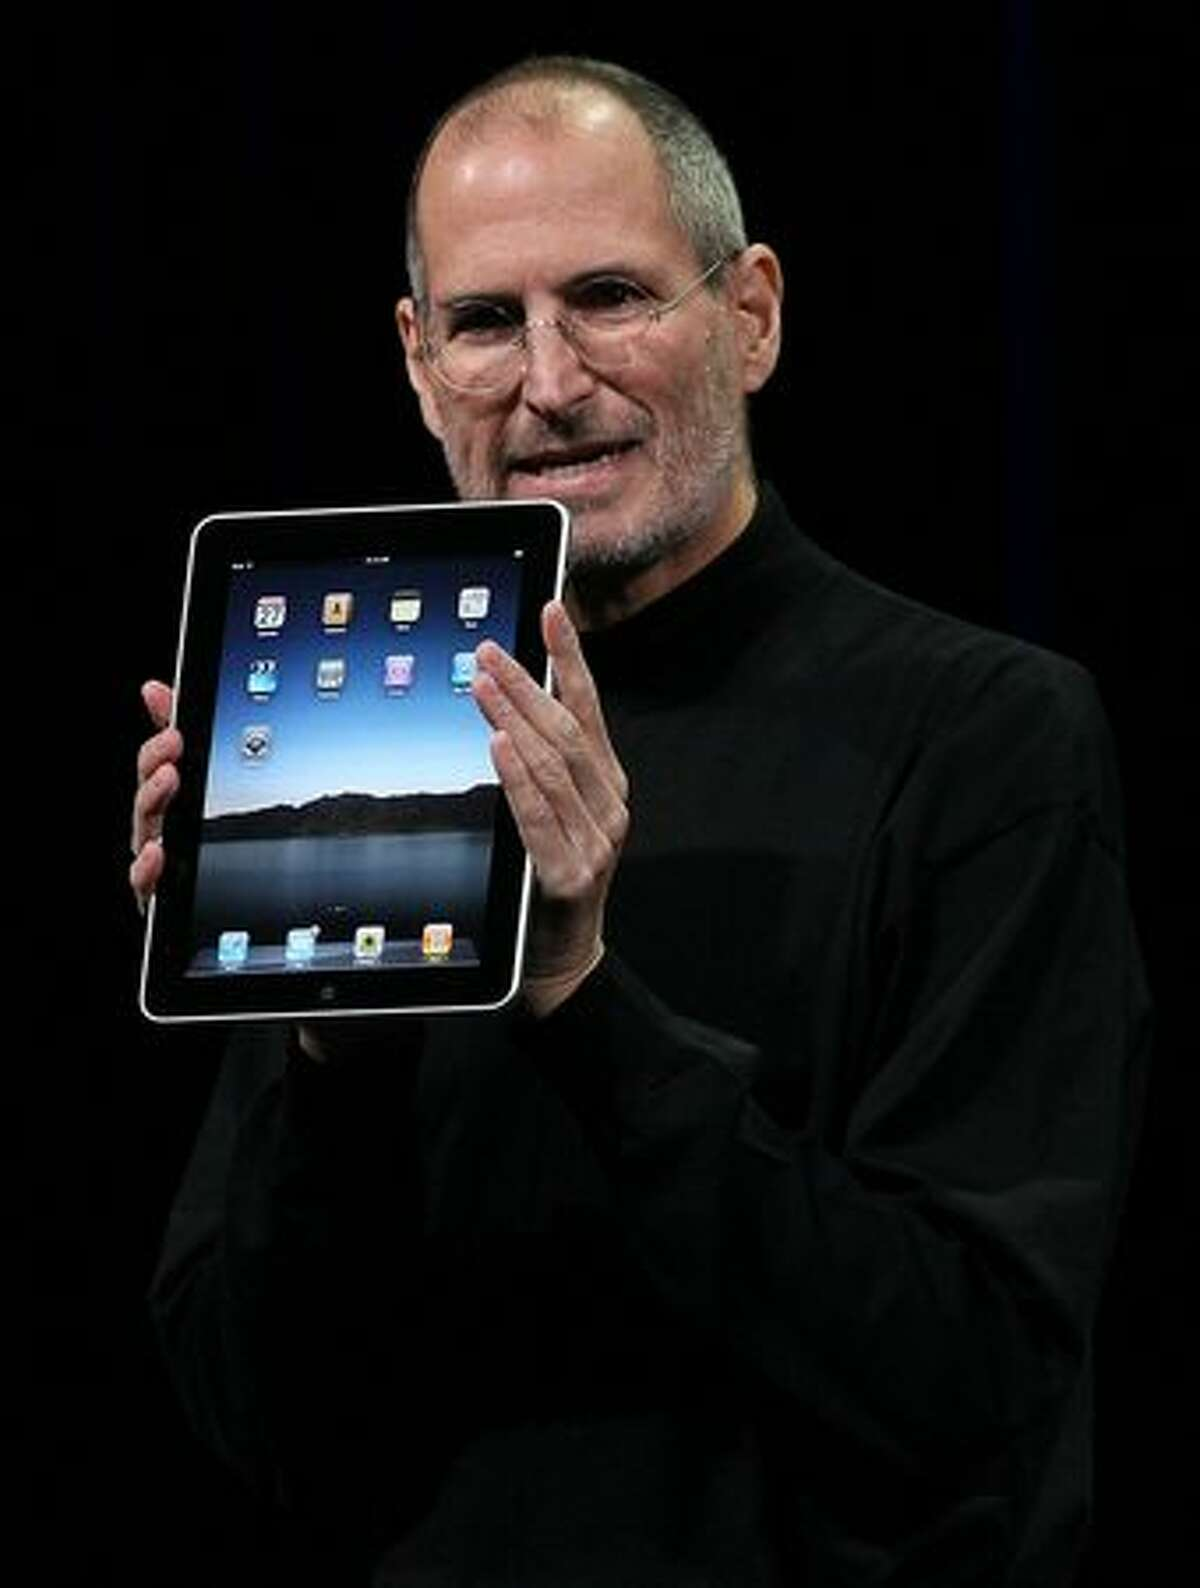 Apple CEO Steve Jobs holds up the new iPad as he speaks during an Apple special event Jan. 27 at the Yerba Buena Center for the Arts in San Francisco. Apple introduced its latest creation, the iPad, a mobile tablet browsing device that is a cross between the iPhone and a MacBook laptop.